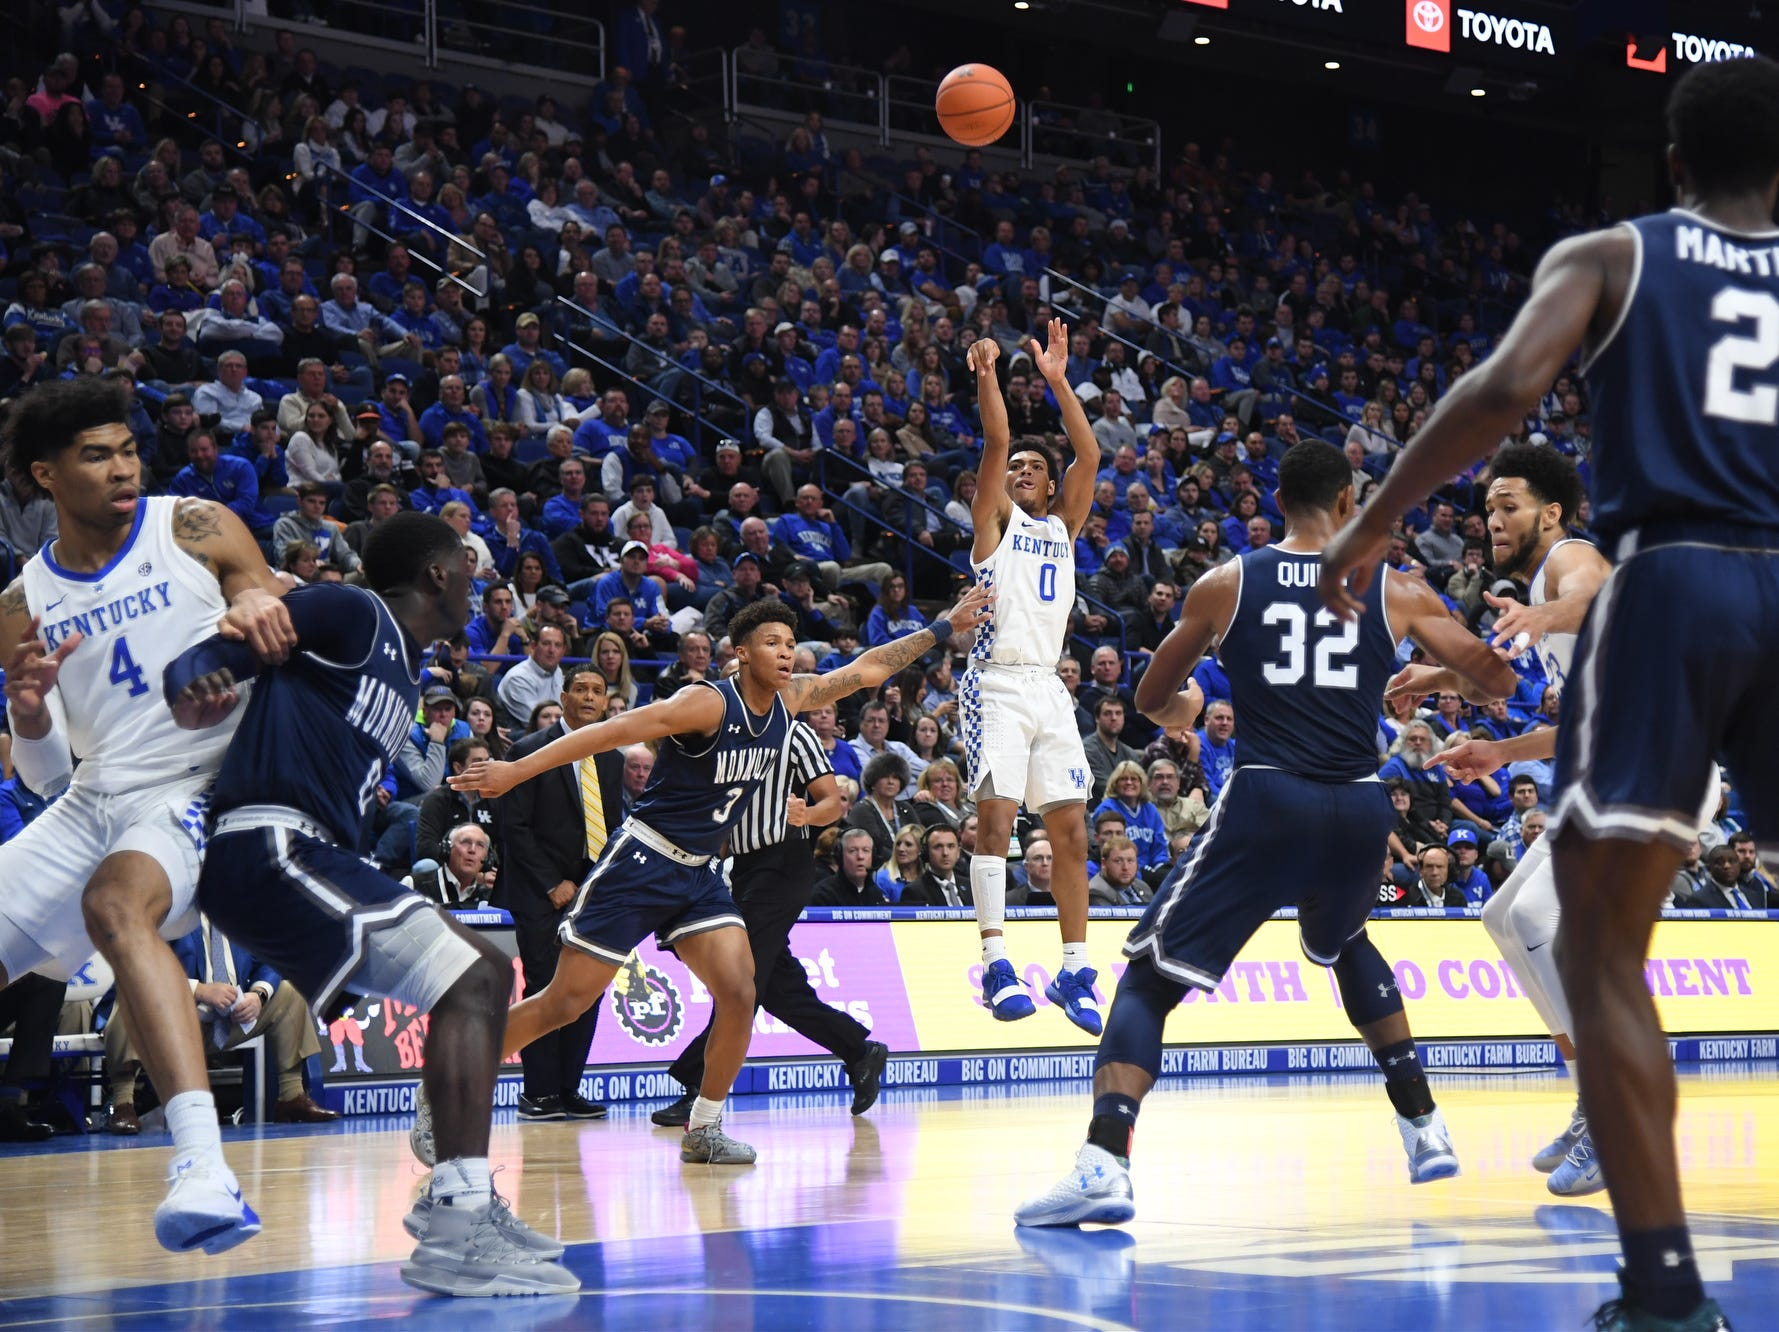 UK G Quade Green shoots during the University of Kentucky mens basketball game against Monmouth at Rupp Arena in Lexington, Kentucky on Wednesday, November 28, 2018.